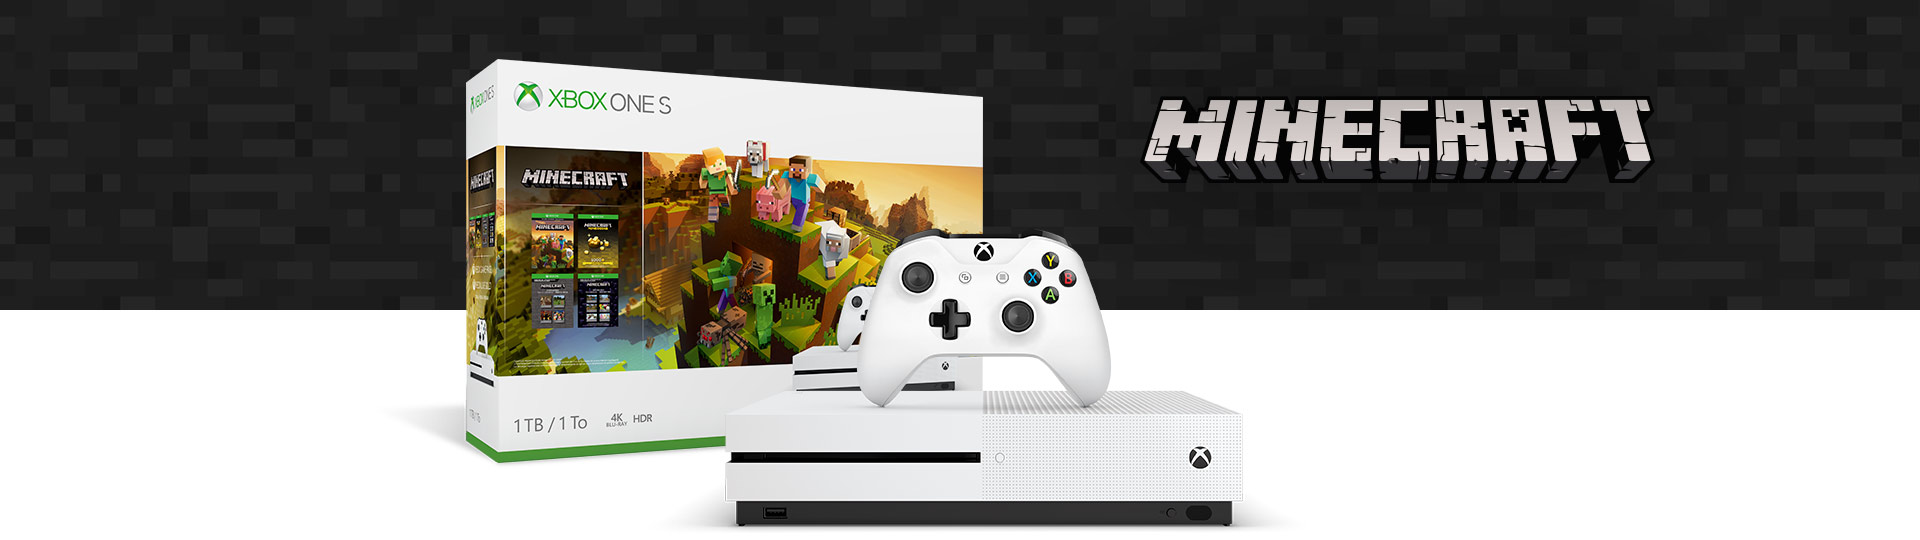 Vista frontal do Pack Xbox One S Minecraft Creators com a caixa do produto